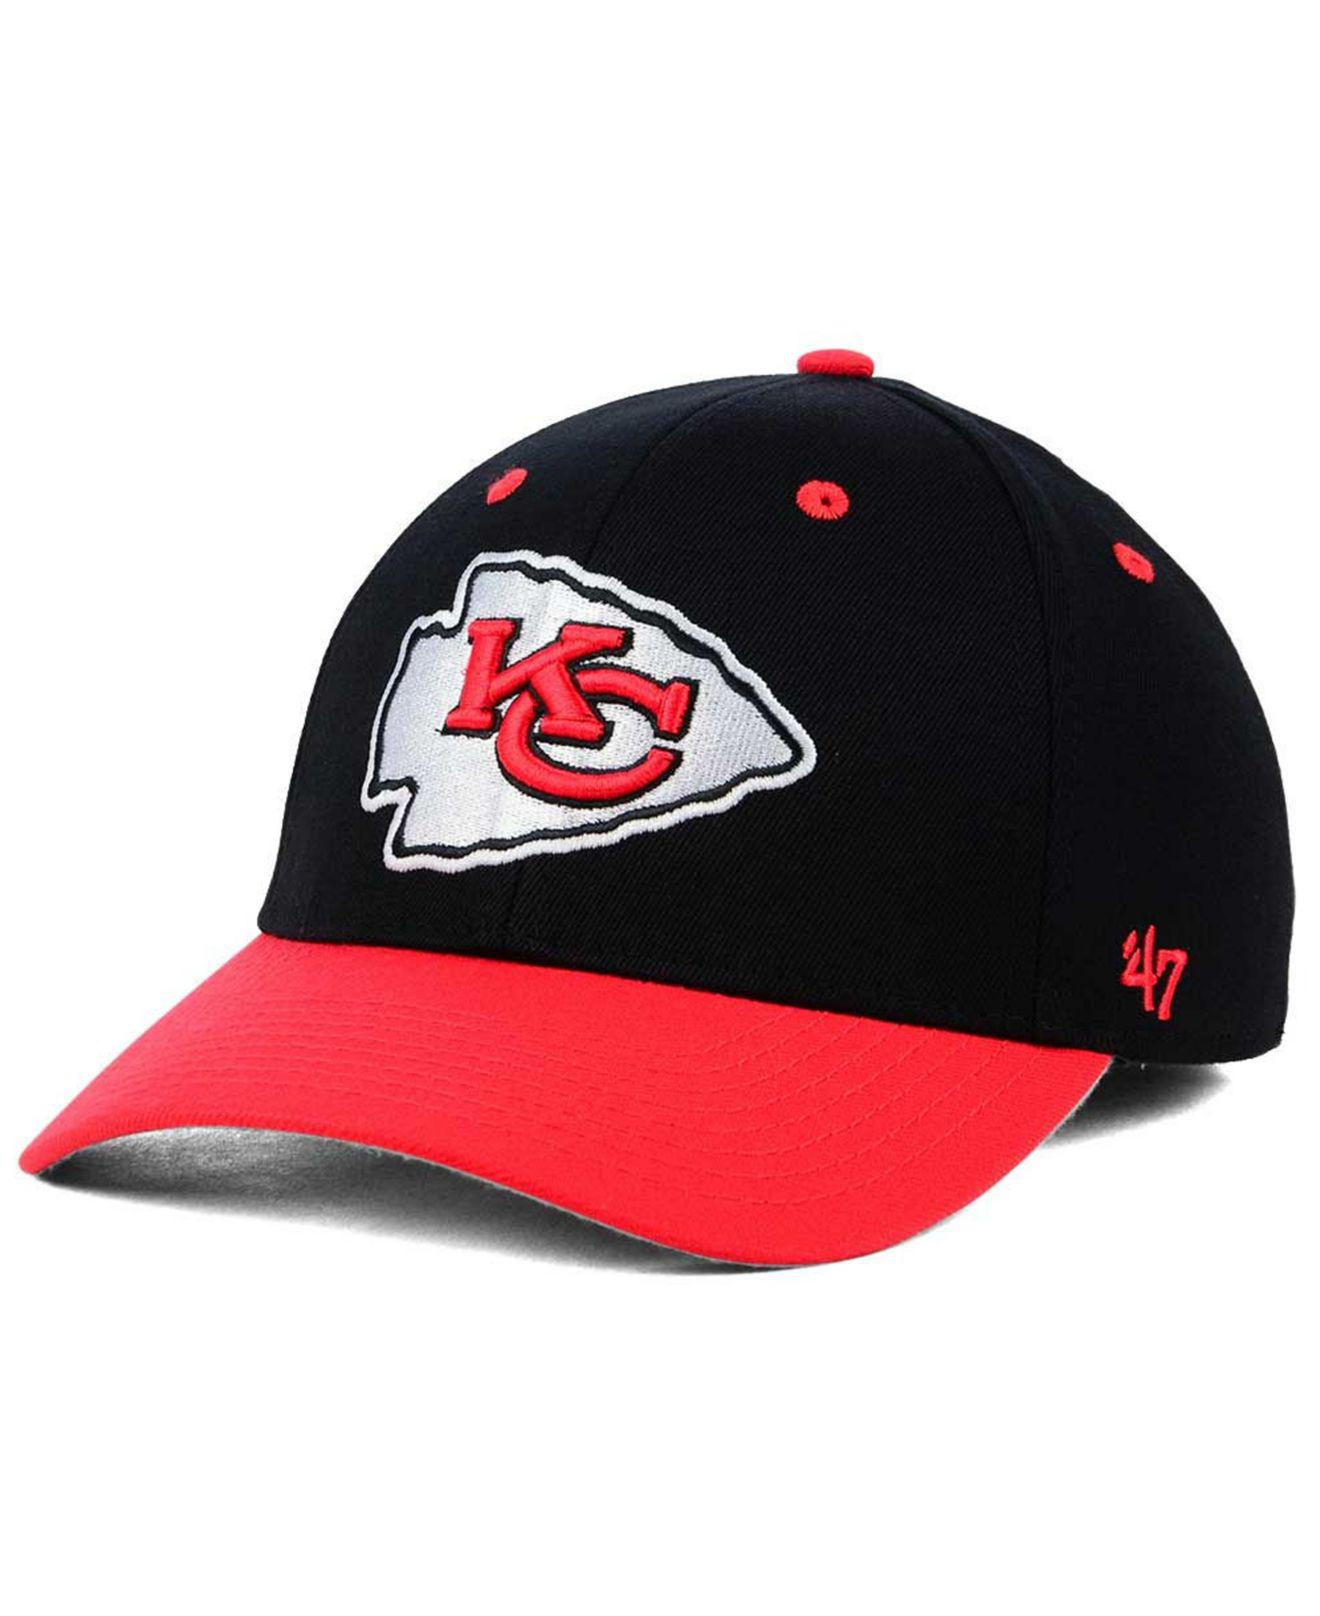 lowest price 65330 f8bc1 Lyst - 47 Brand Kickoff 2-tone Contender Cap in Red for Men